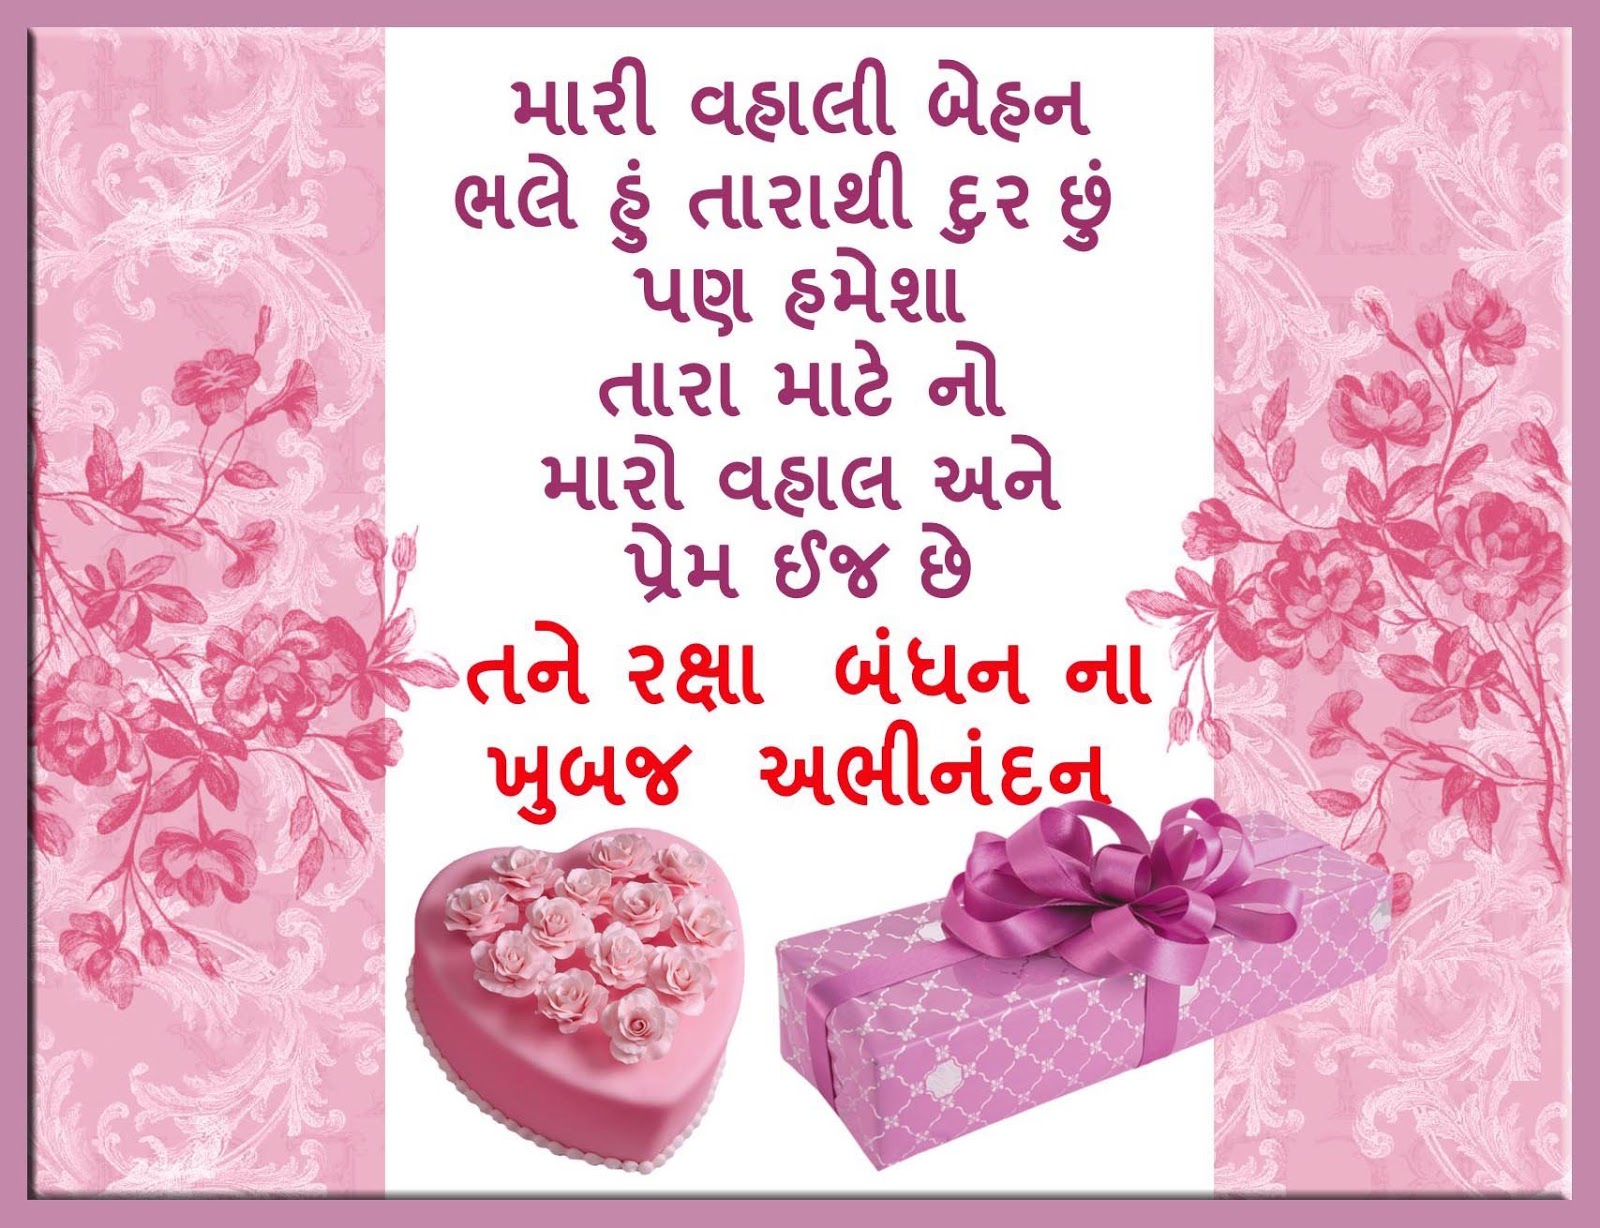 Latest happy raksha bandhan wishes sms messages in gujarati raksha bandhan greetings in gujarati kristyandbryce Image collections